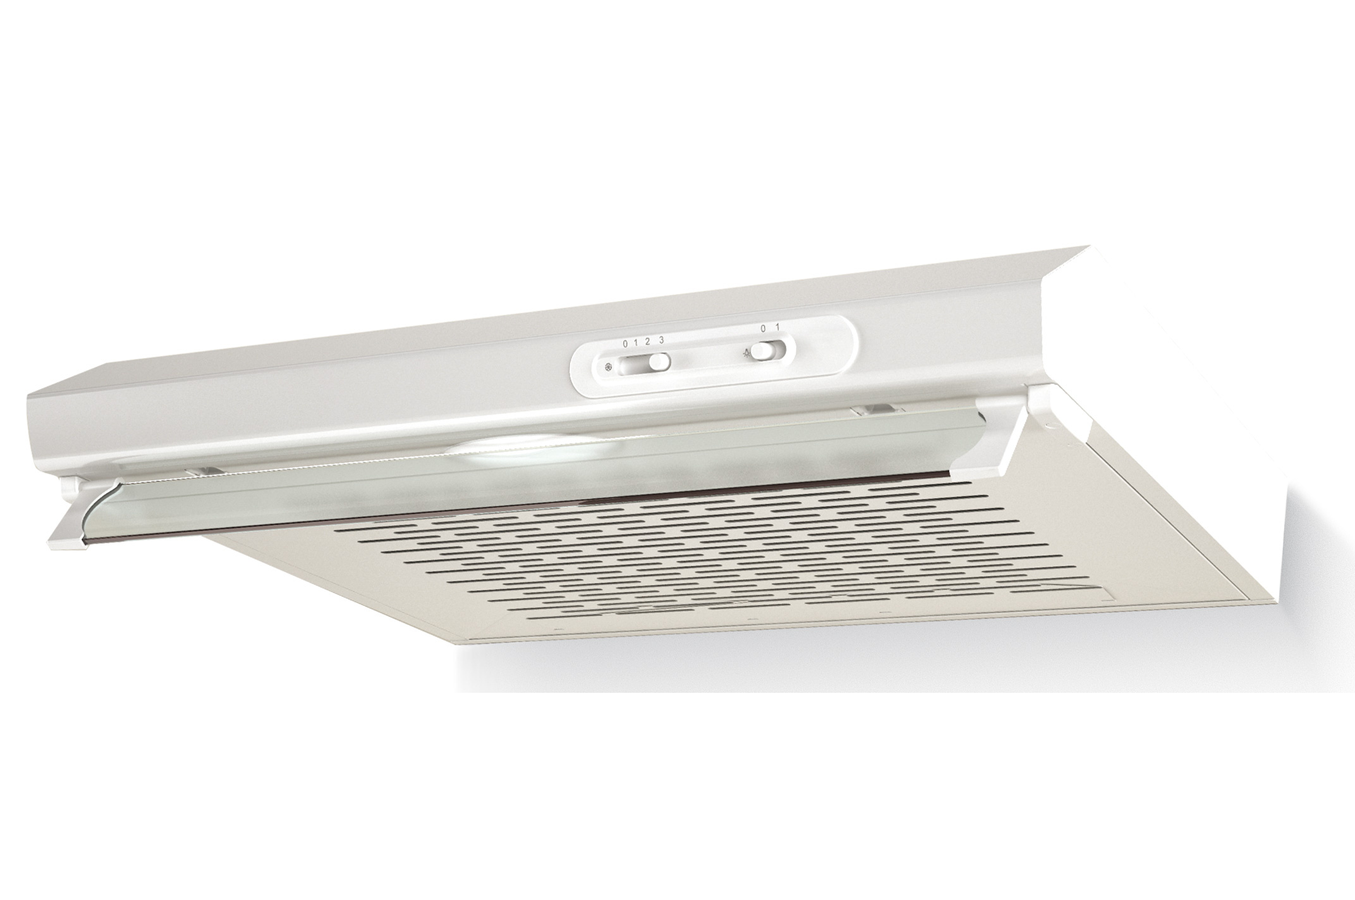 Hotte visi re proline shp60wh 4137167 darty - Darty hotte de cuisine ...